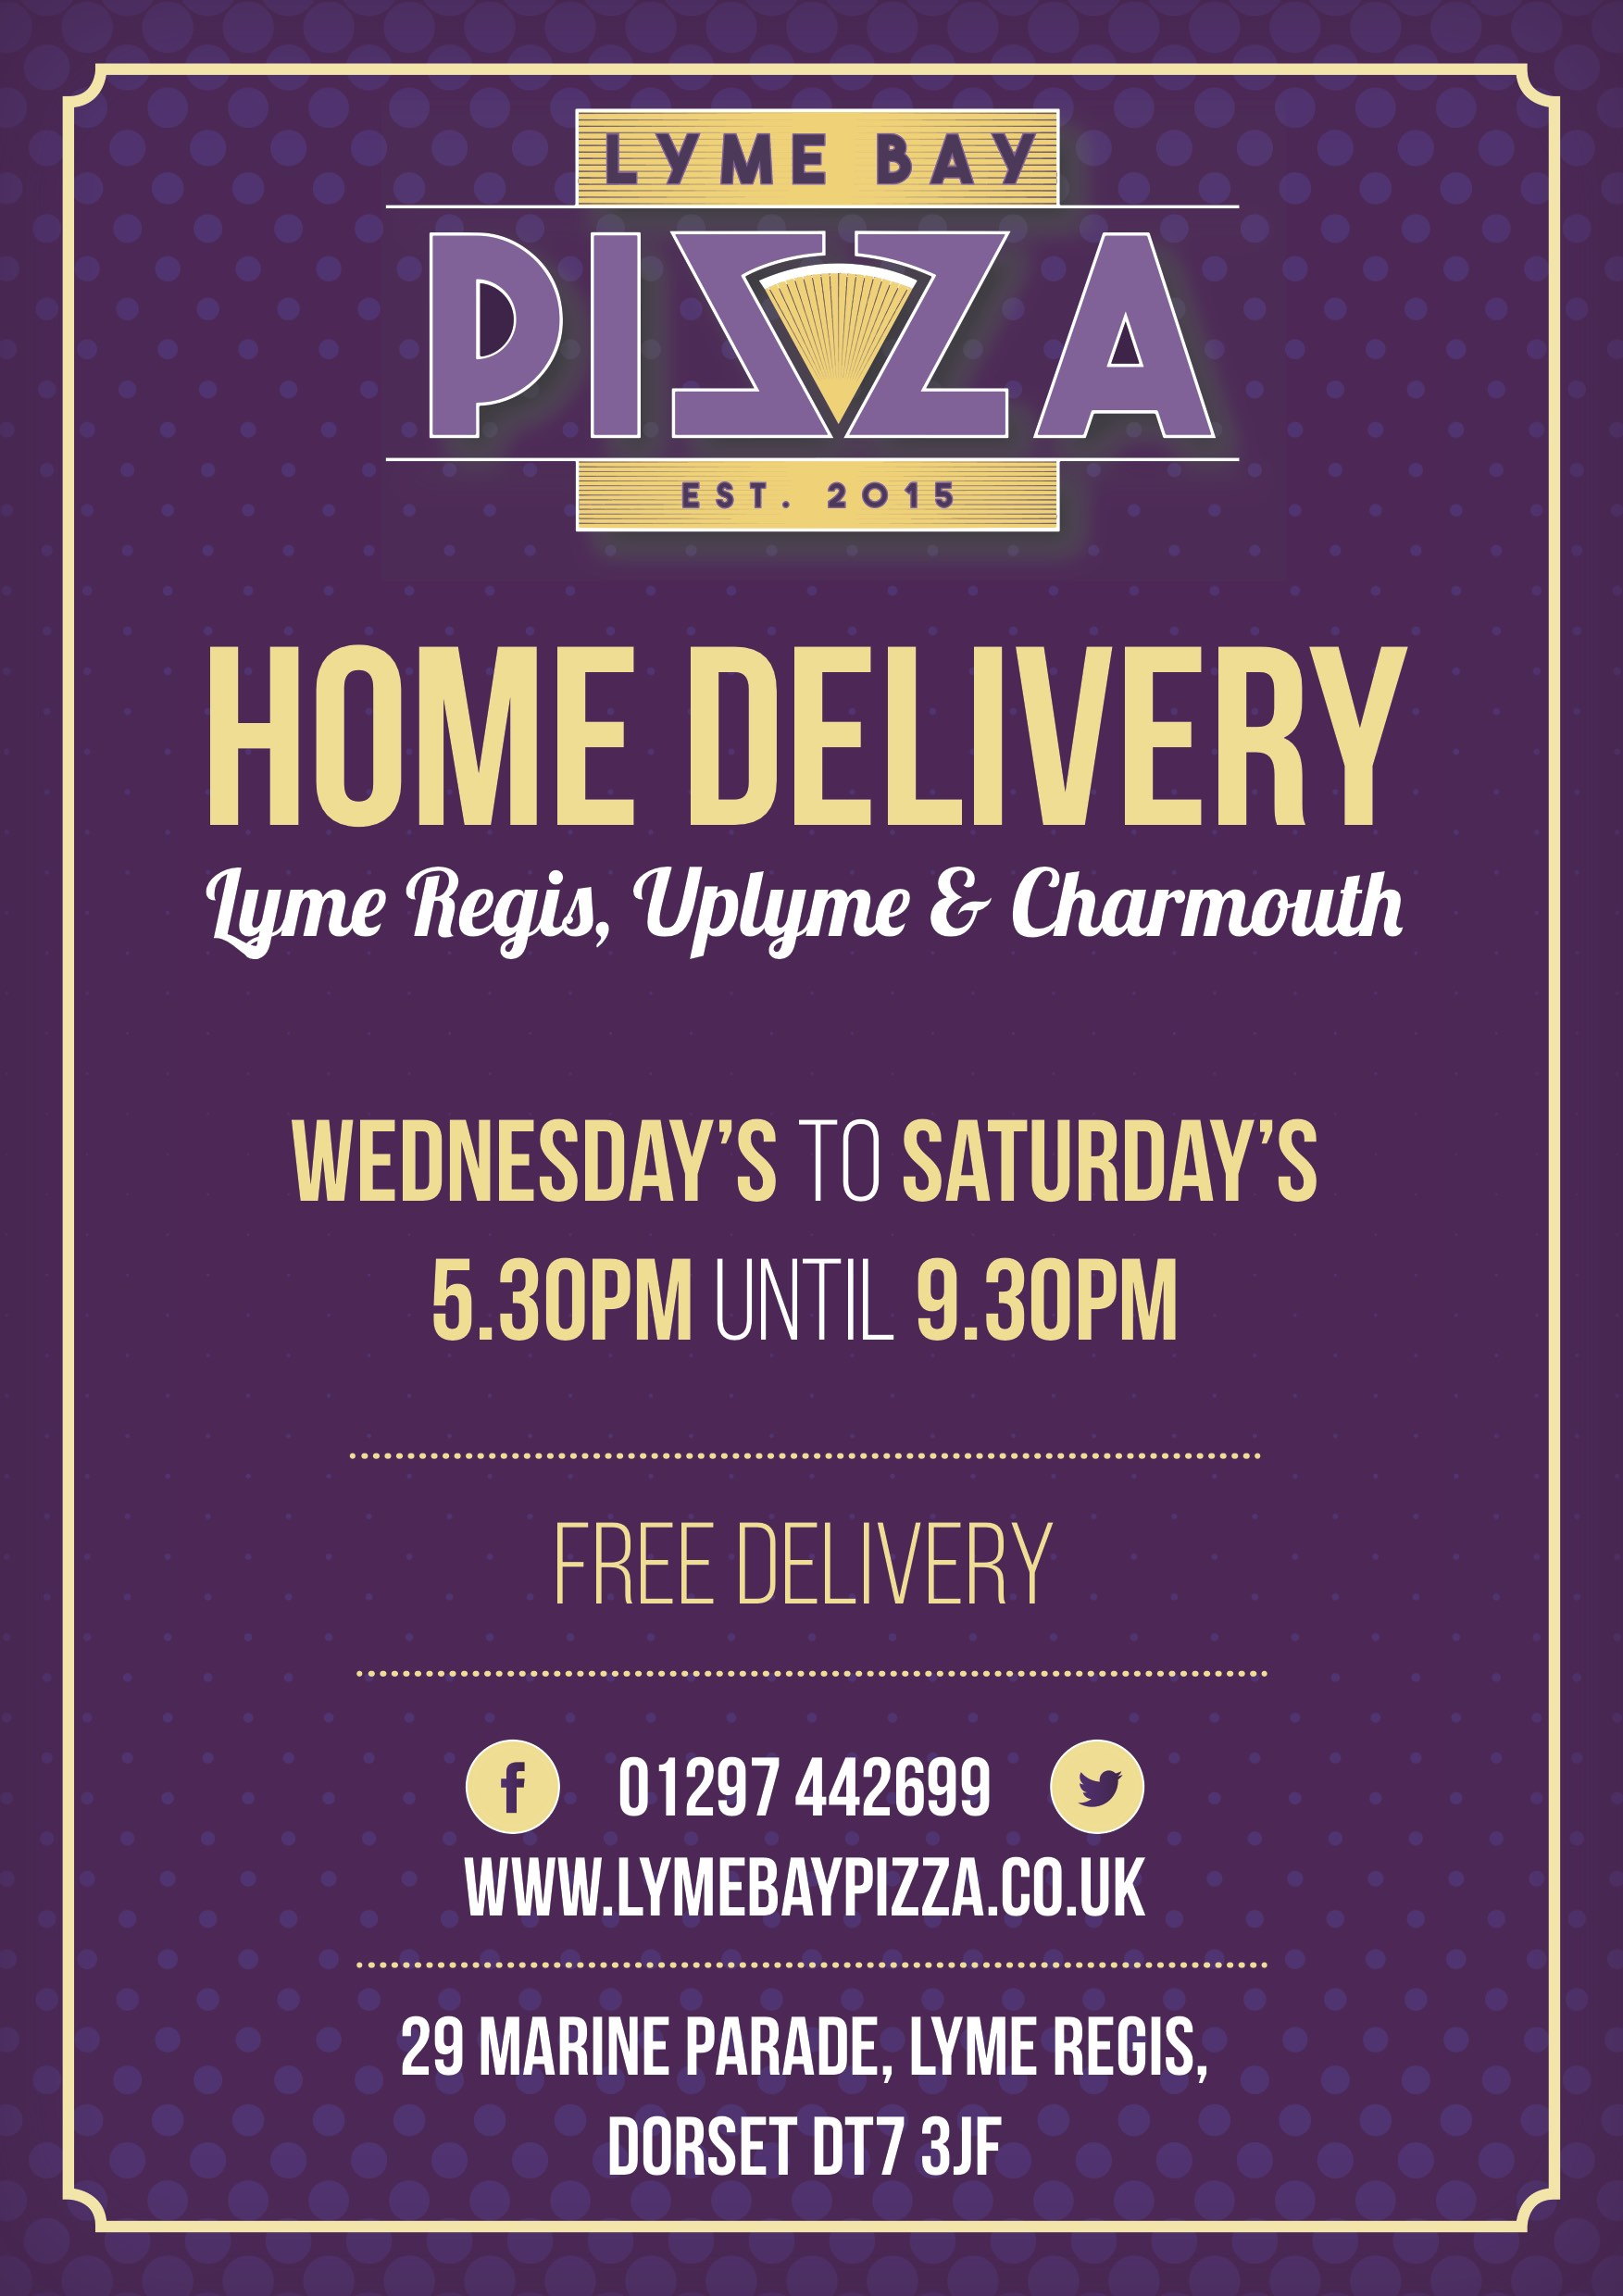 Pizza delivery from Lyme Bay Pizza